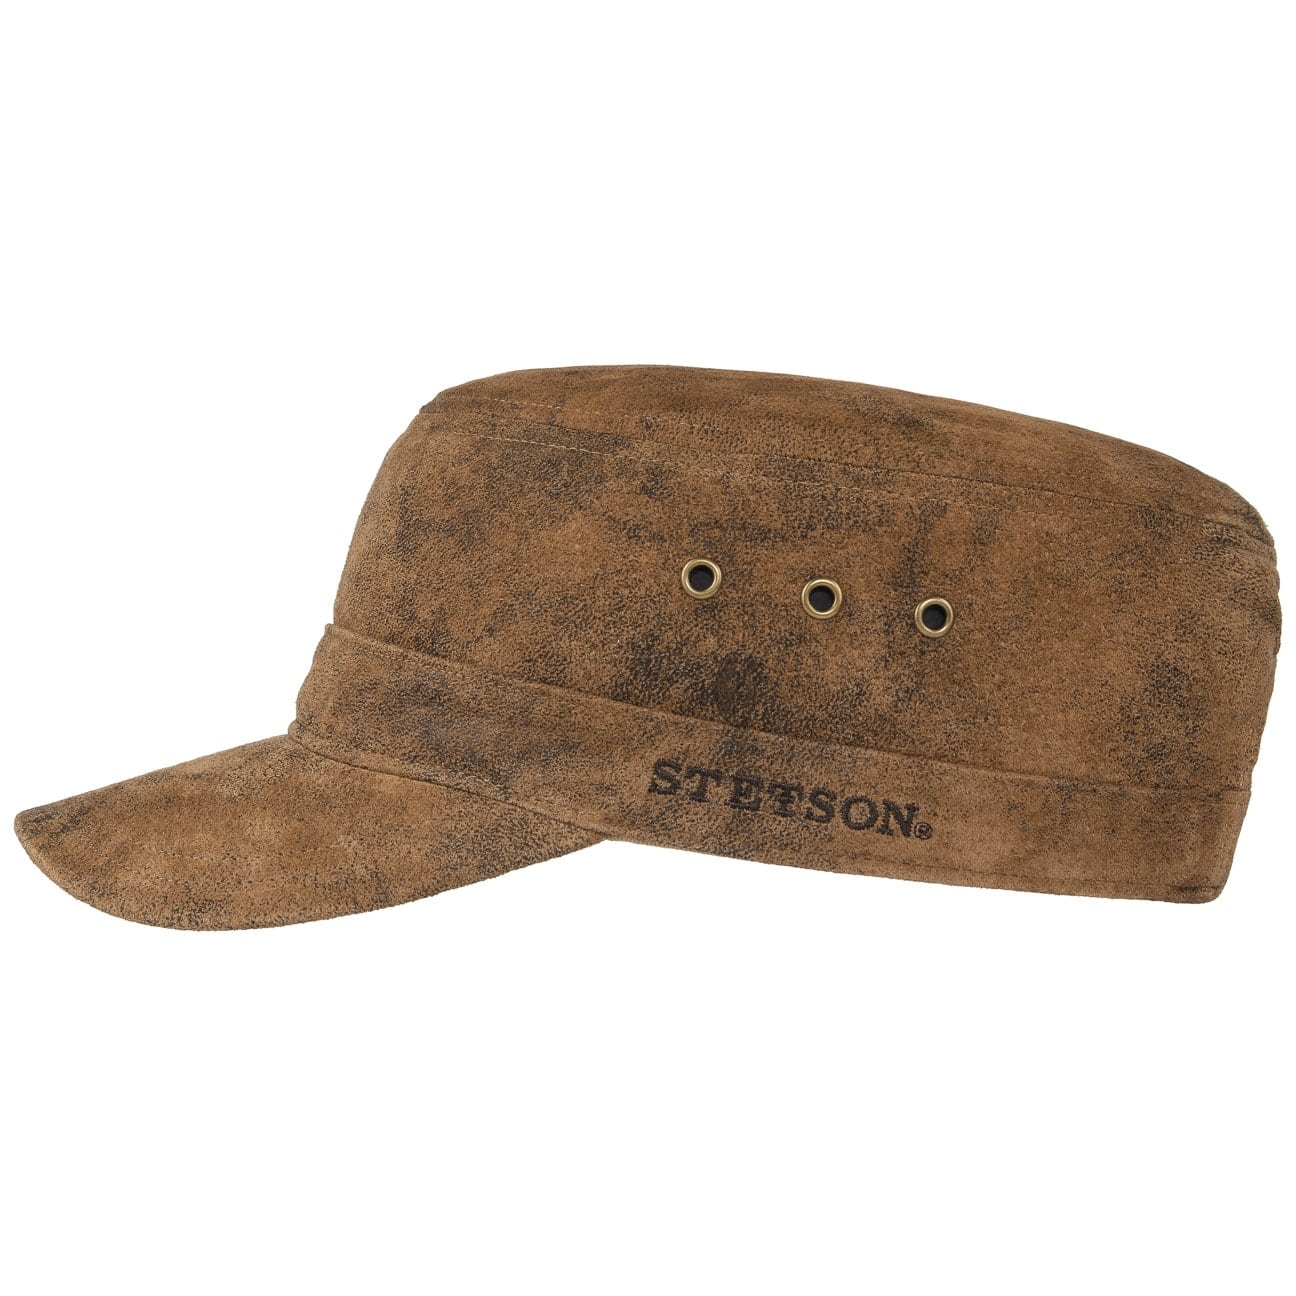 Raymore Pigskin Army Cap. by Stetson d231dcb94